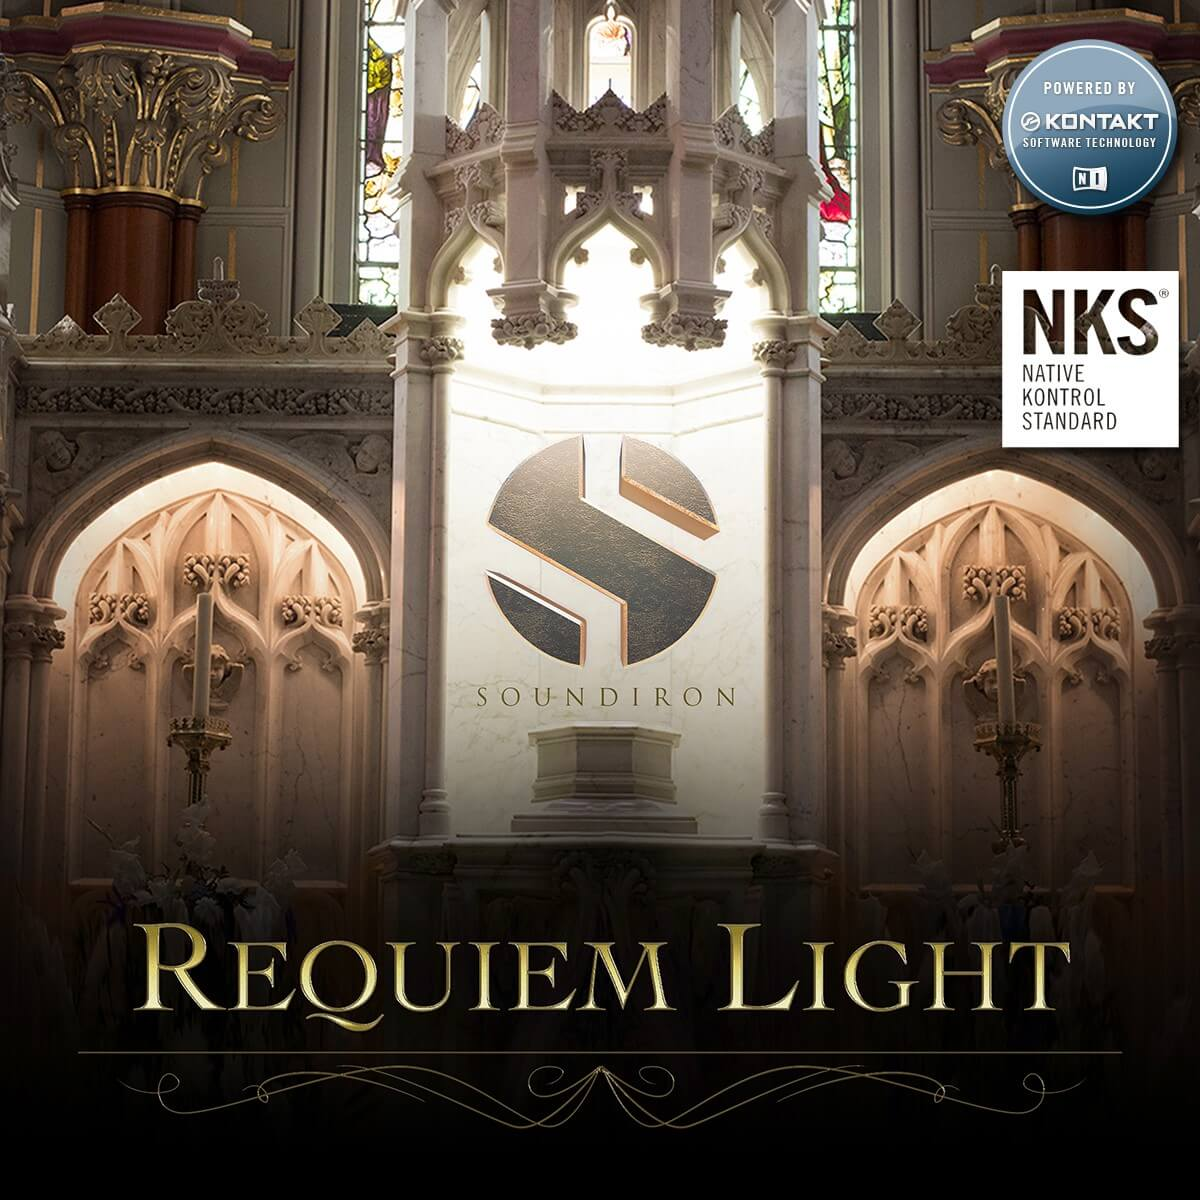 Requiem Light 3 0 symphonic choir for Kontakt Player released